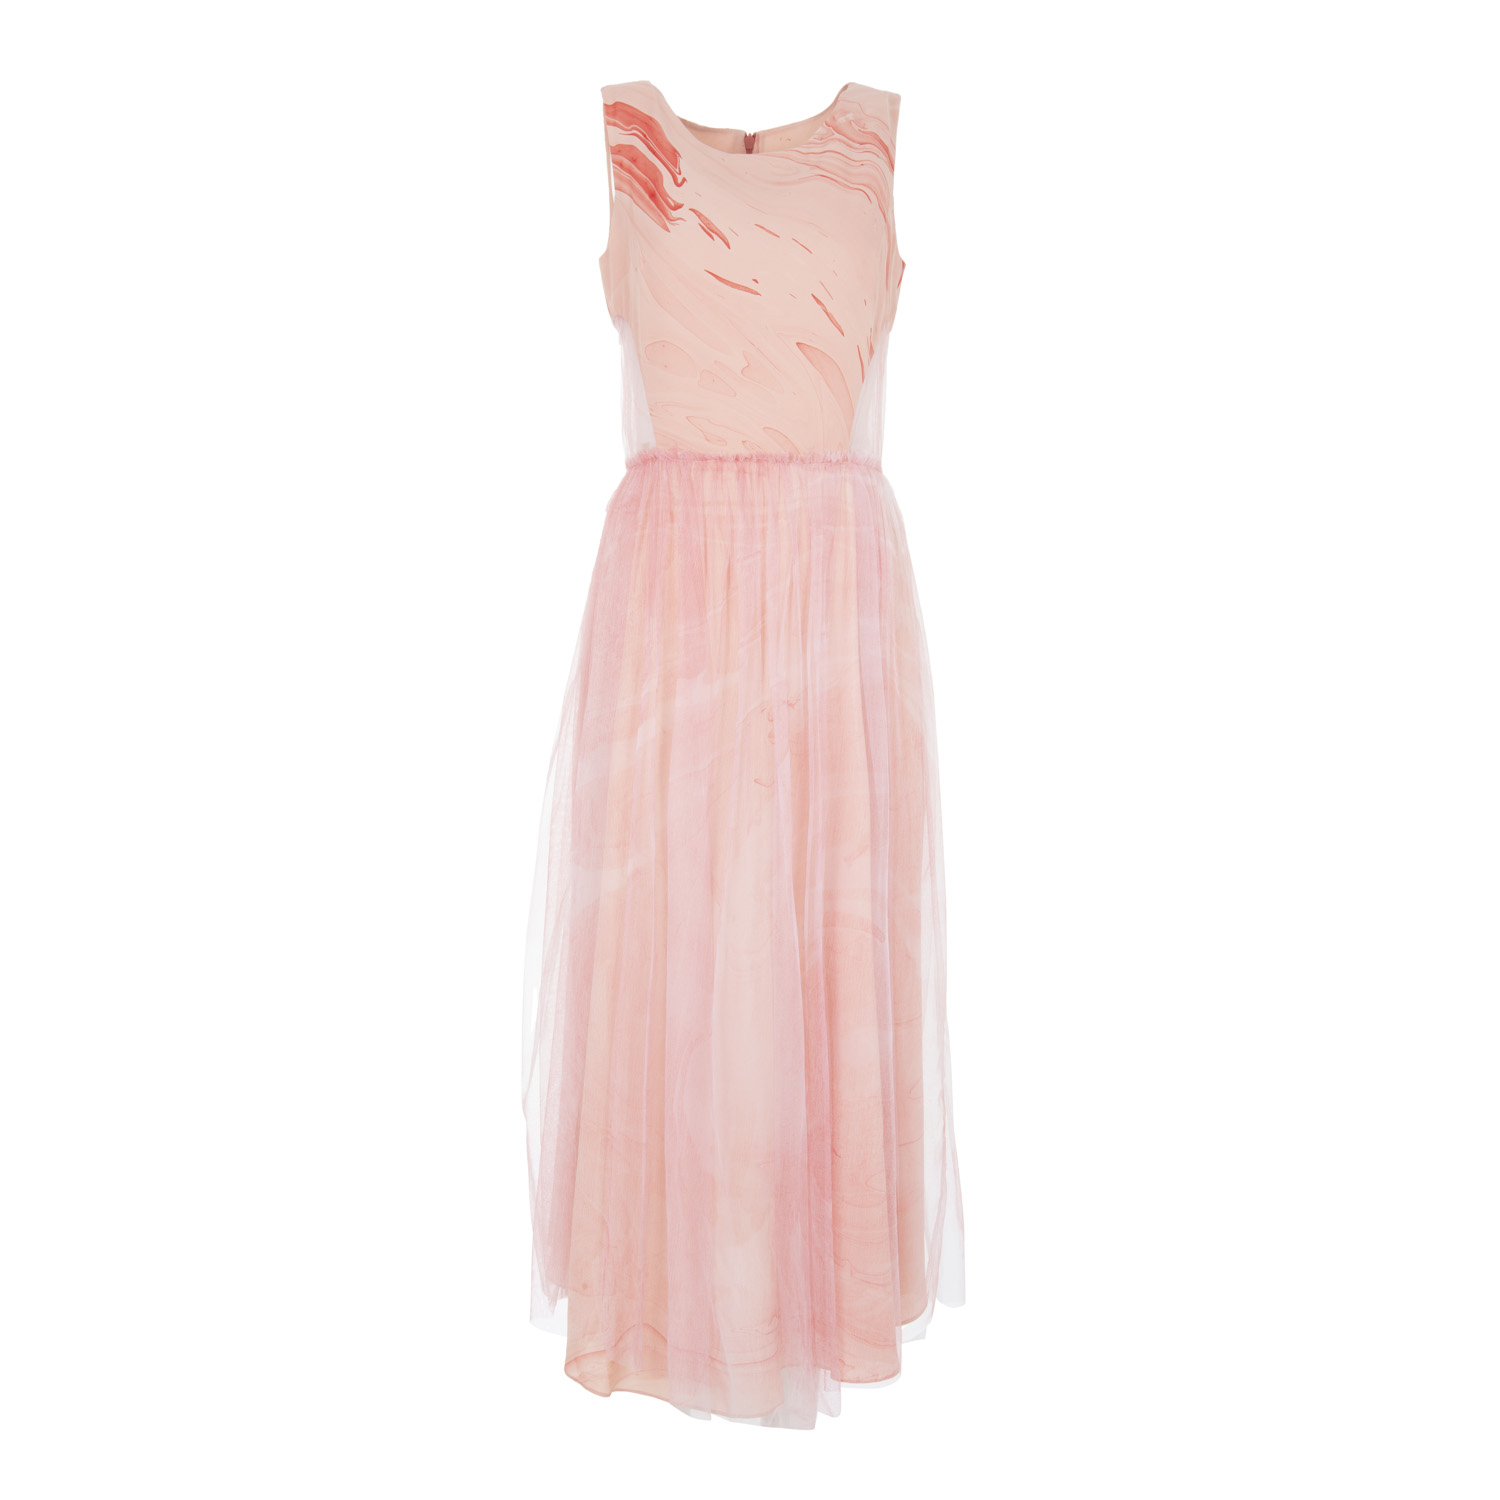 hand dyed layered cut out pink silk dress